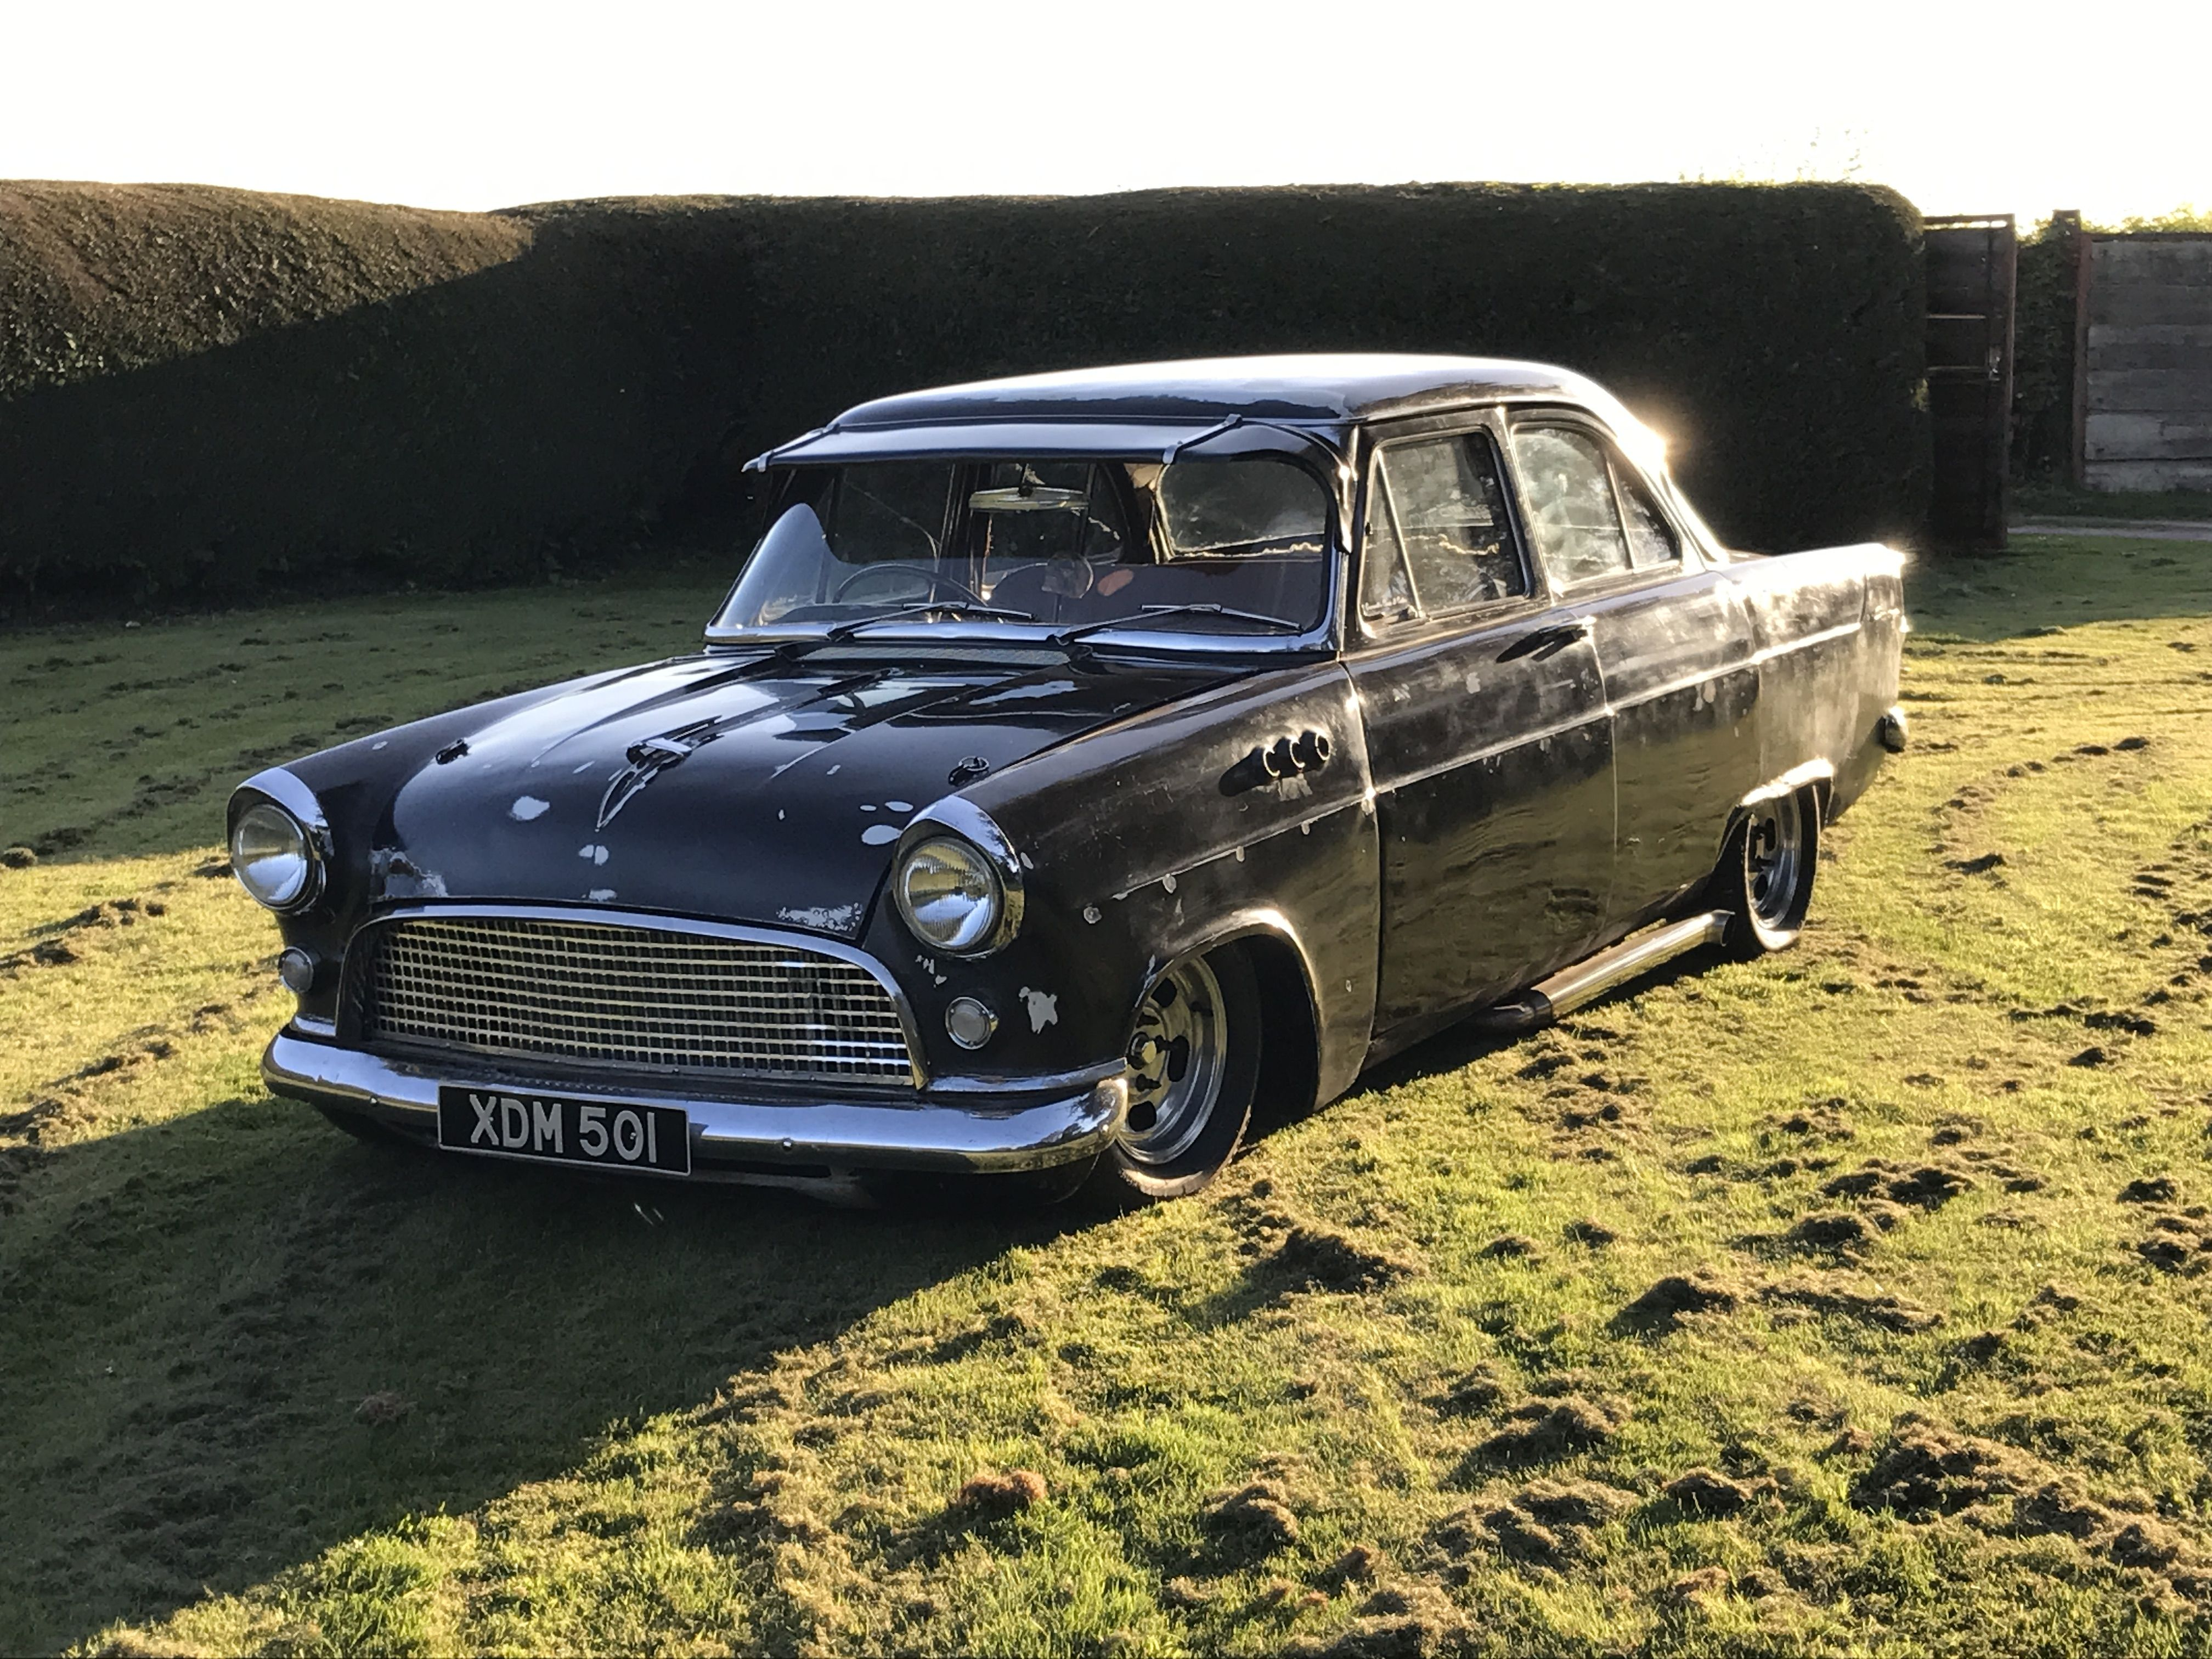 Ford Consul Mk2 Rat Rod Air Ride Essex V6 Side Pipes Hot Rod By Greensmiths Classic Custom Air Ride Rat Rod Consul